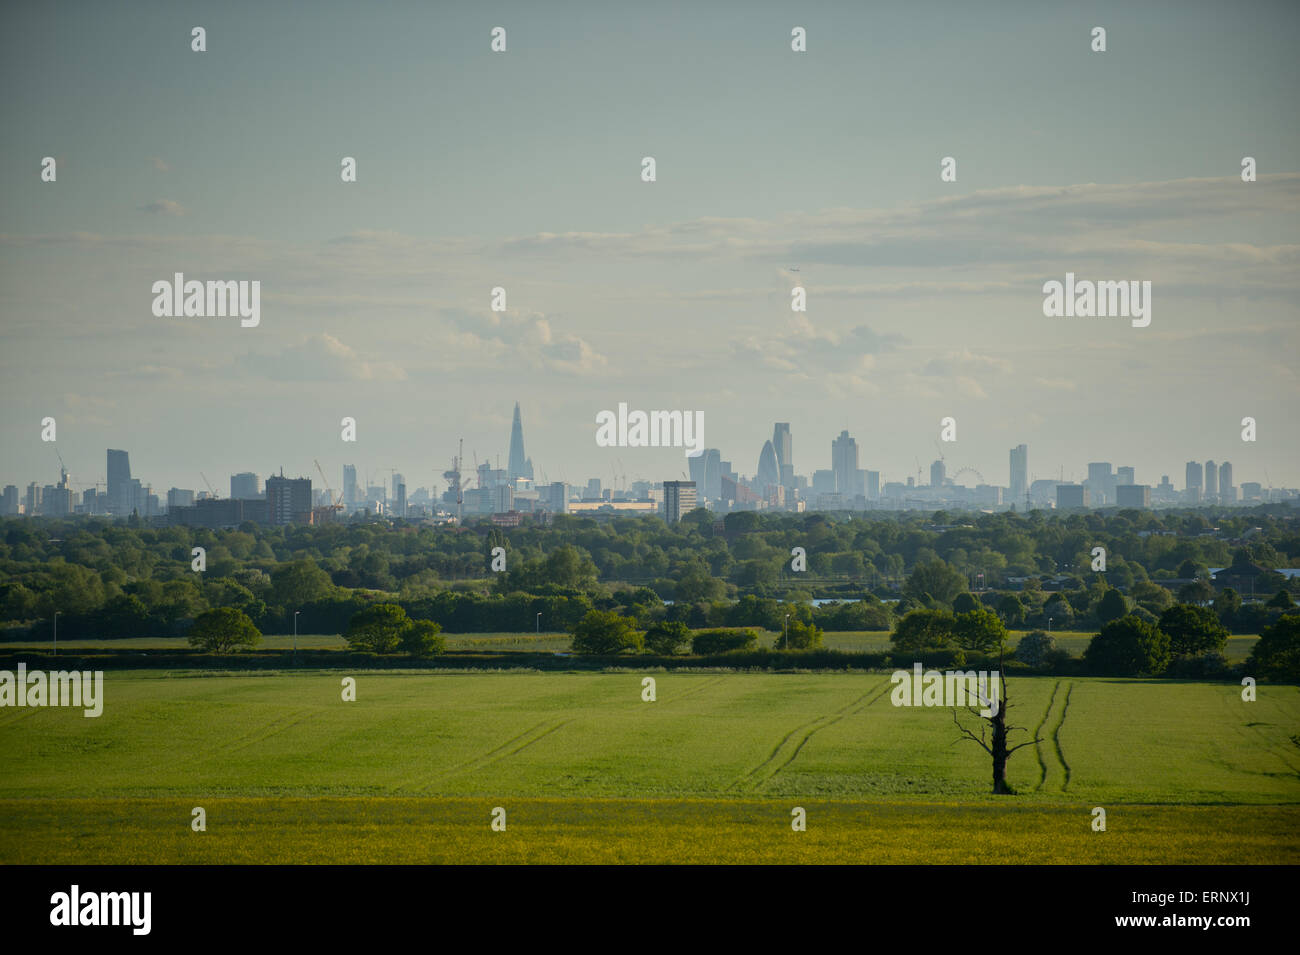 The London skyline from Hainault, Essex showing the Shard, Tower 42, 30 St Mary Axe (the gherkin), 20 Fenchurch - Stock Image